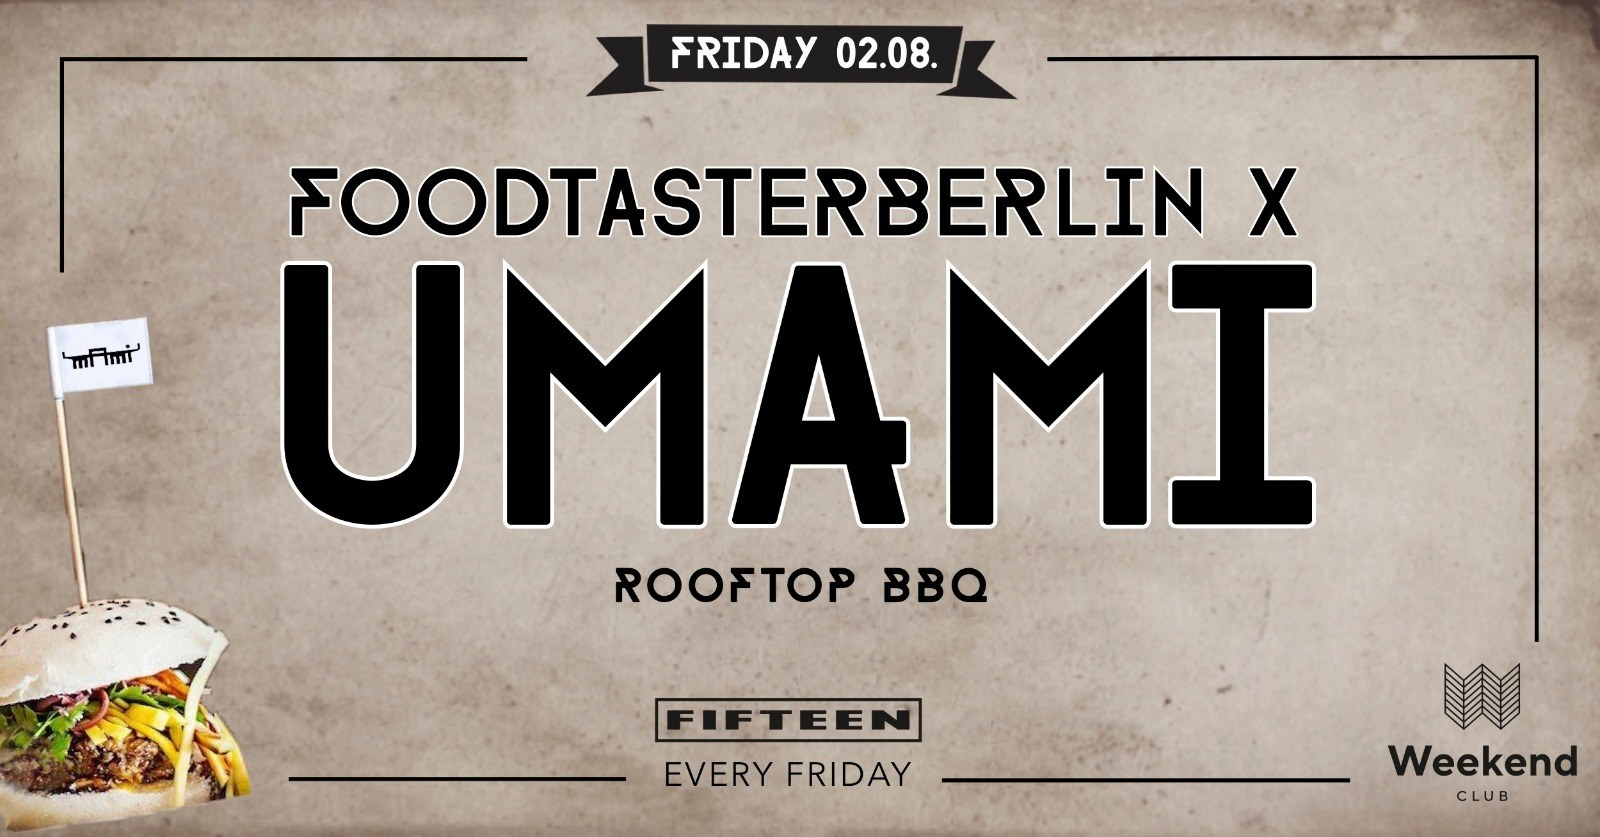 ☆ Foodtasterberlin x UMAMI - Rooftop BBQ ☆ Foodtasterberlin presents Berlin's must-eat food!  What's better than watching the sunset with the best view over Berlin, eating super delicious UMAMI signature finger food  enjoying great music  from a live DJ and drinking delicious drinks?